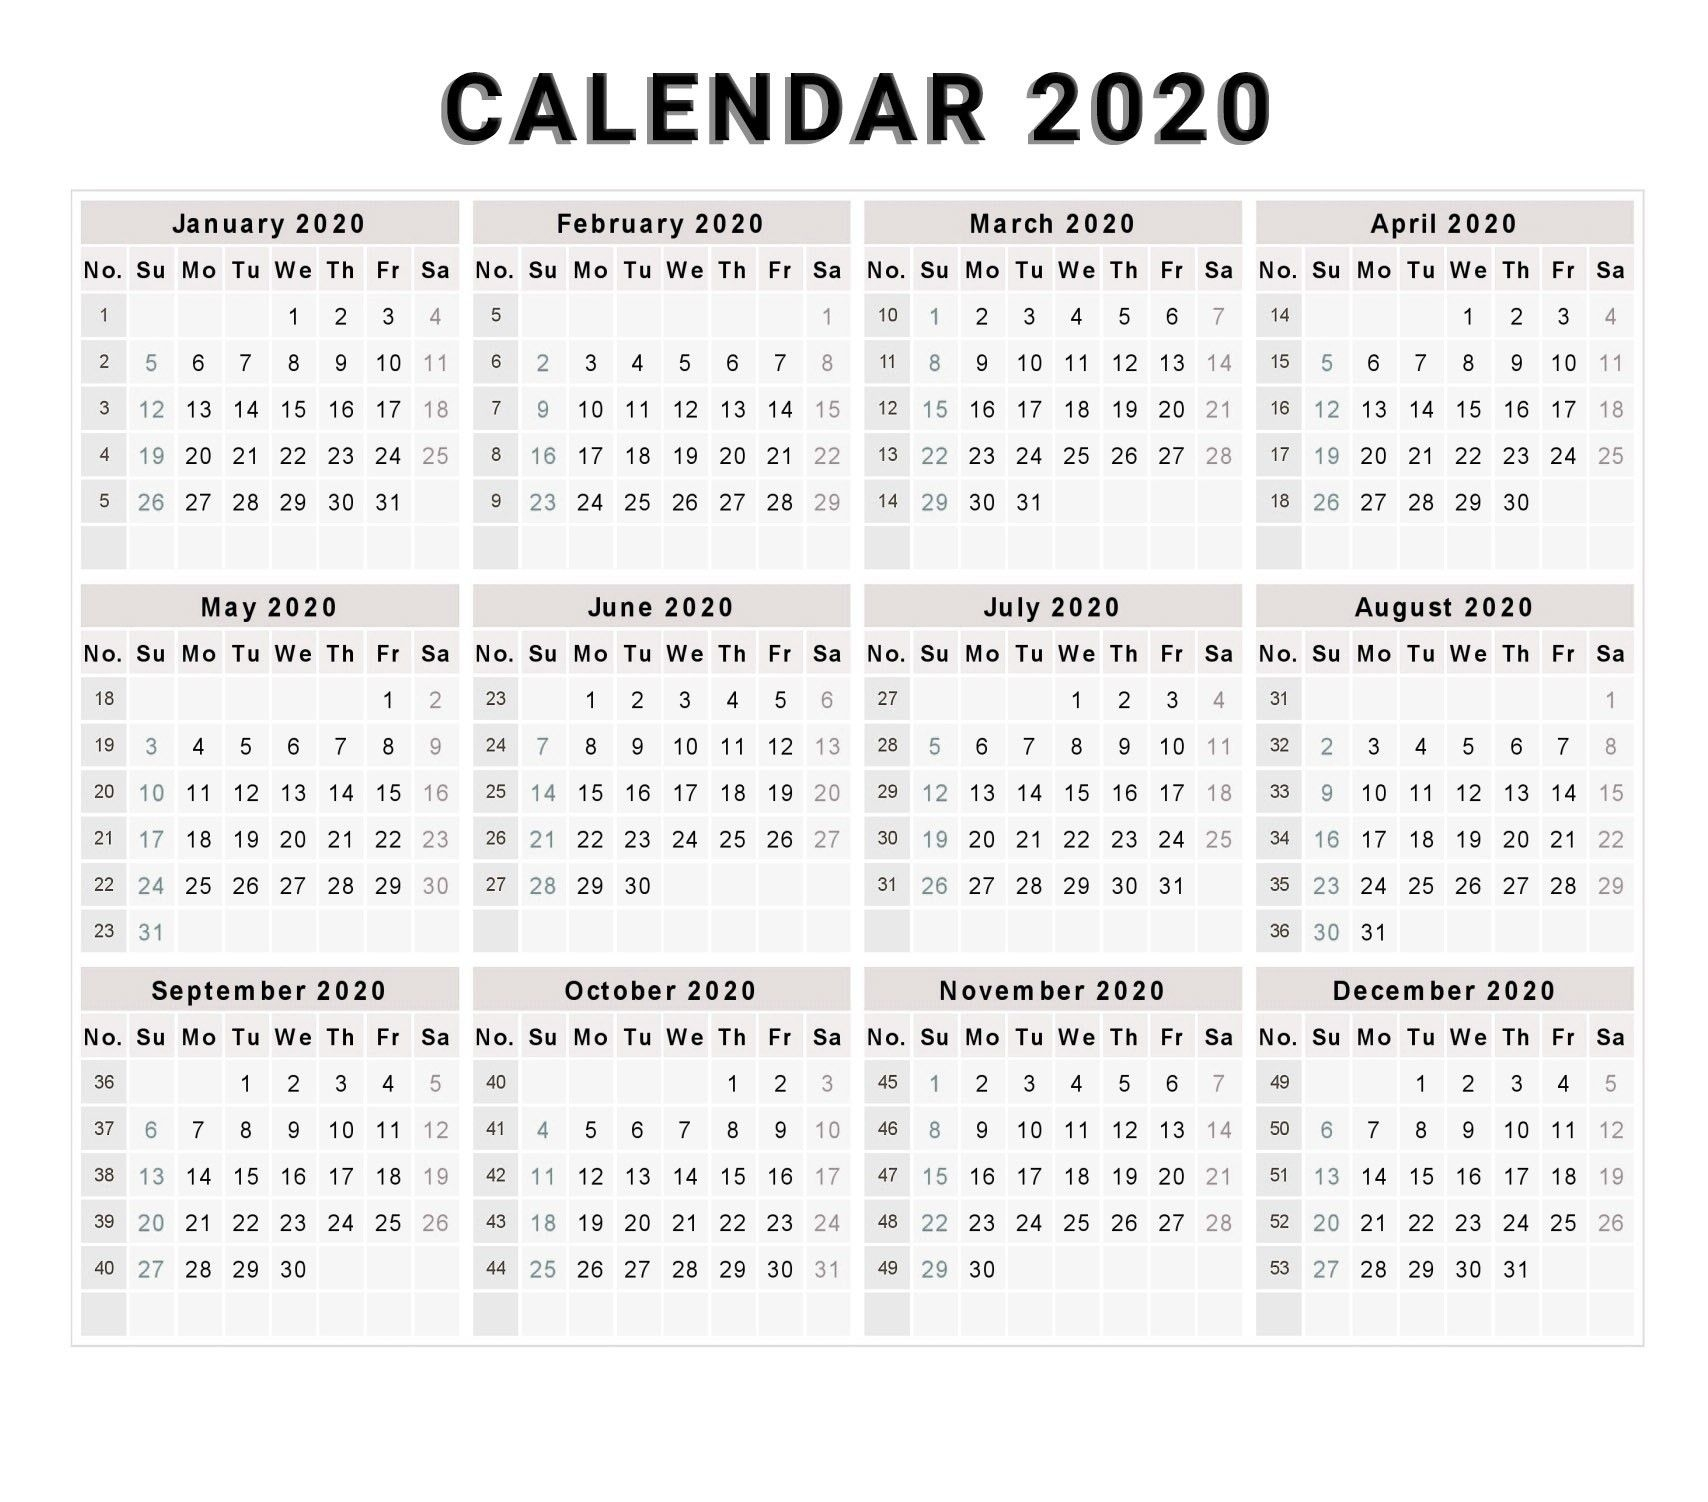 Calendar 2020 Free Printable Calendar 2020 Free 2020 pertaining to Yearly Monday To Sunday Calendar 2020 With Week Numbers